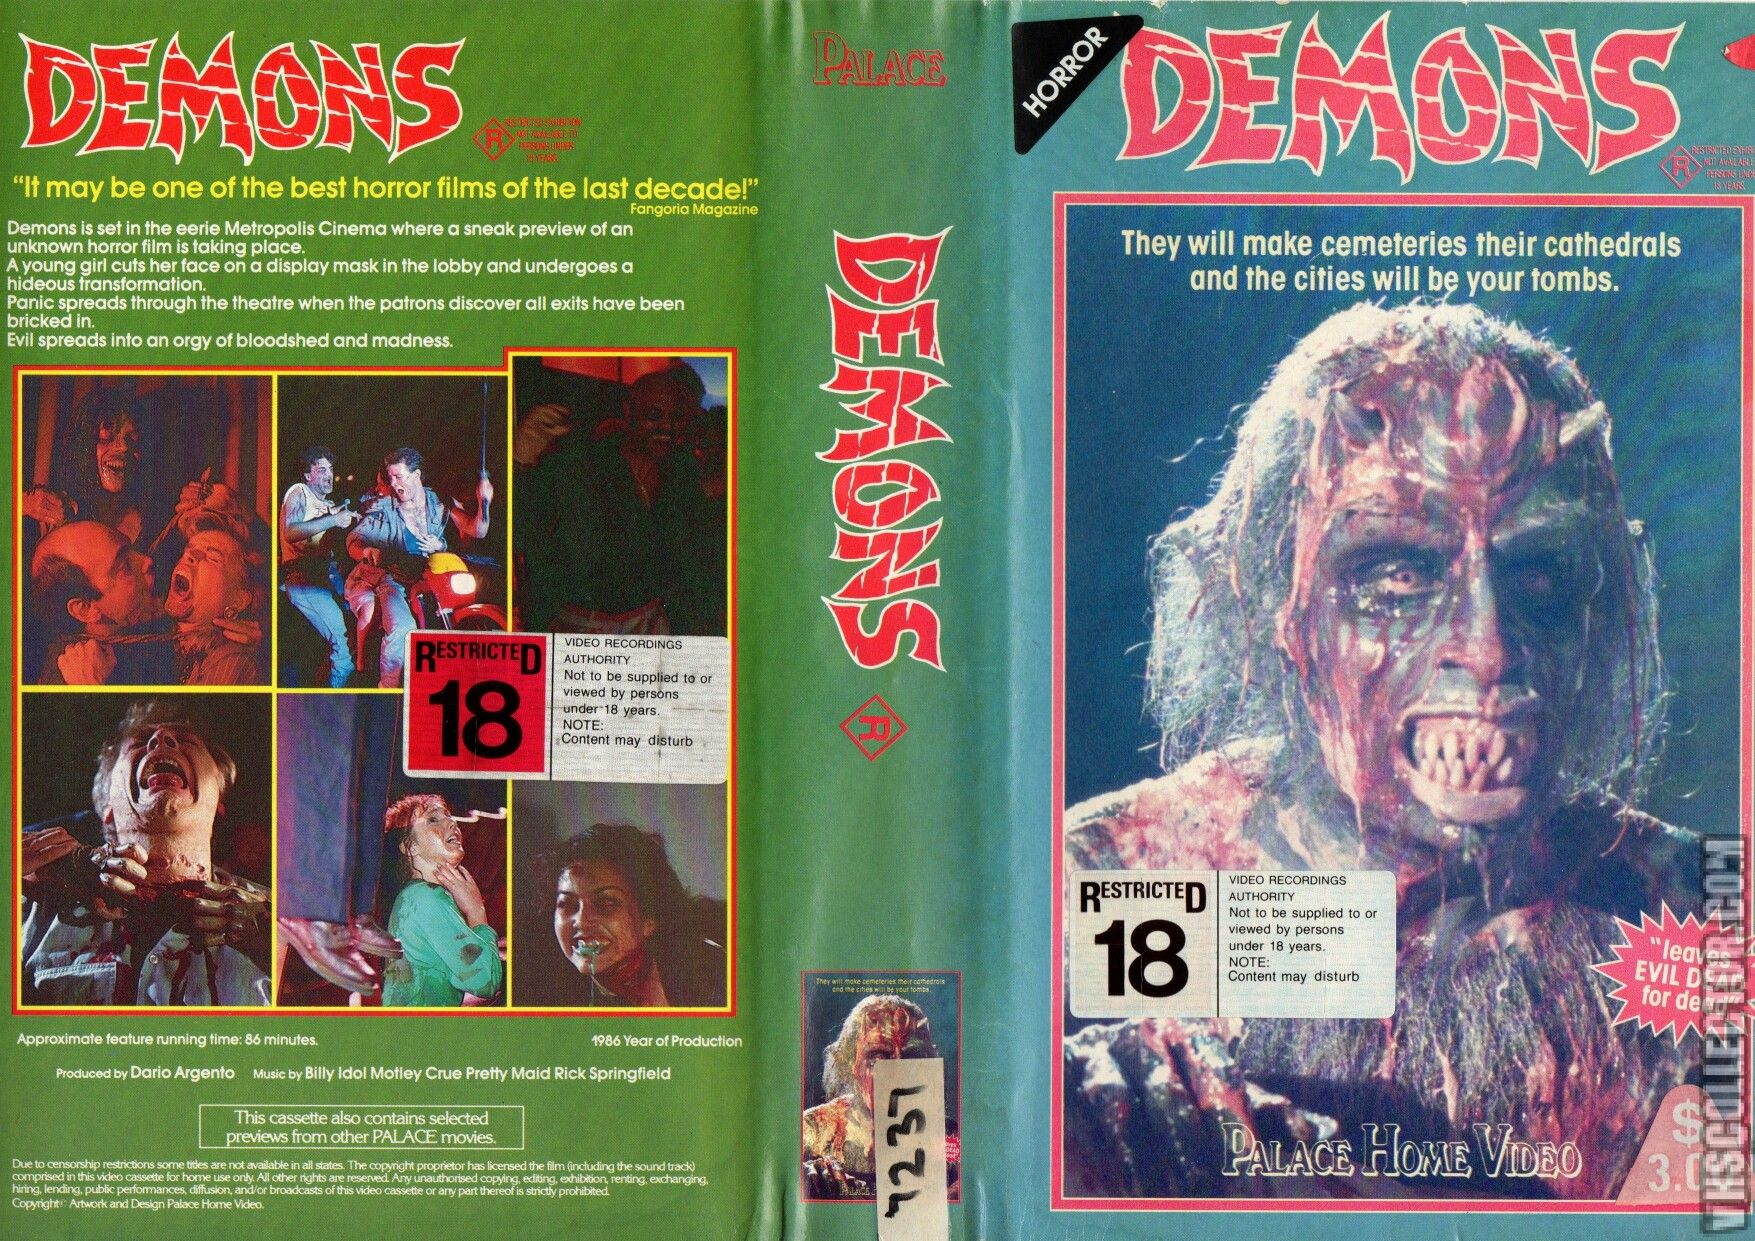 Demons (Cover VHS) | Movie covers, Horror, Horror movies